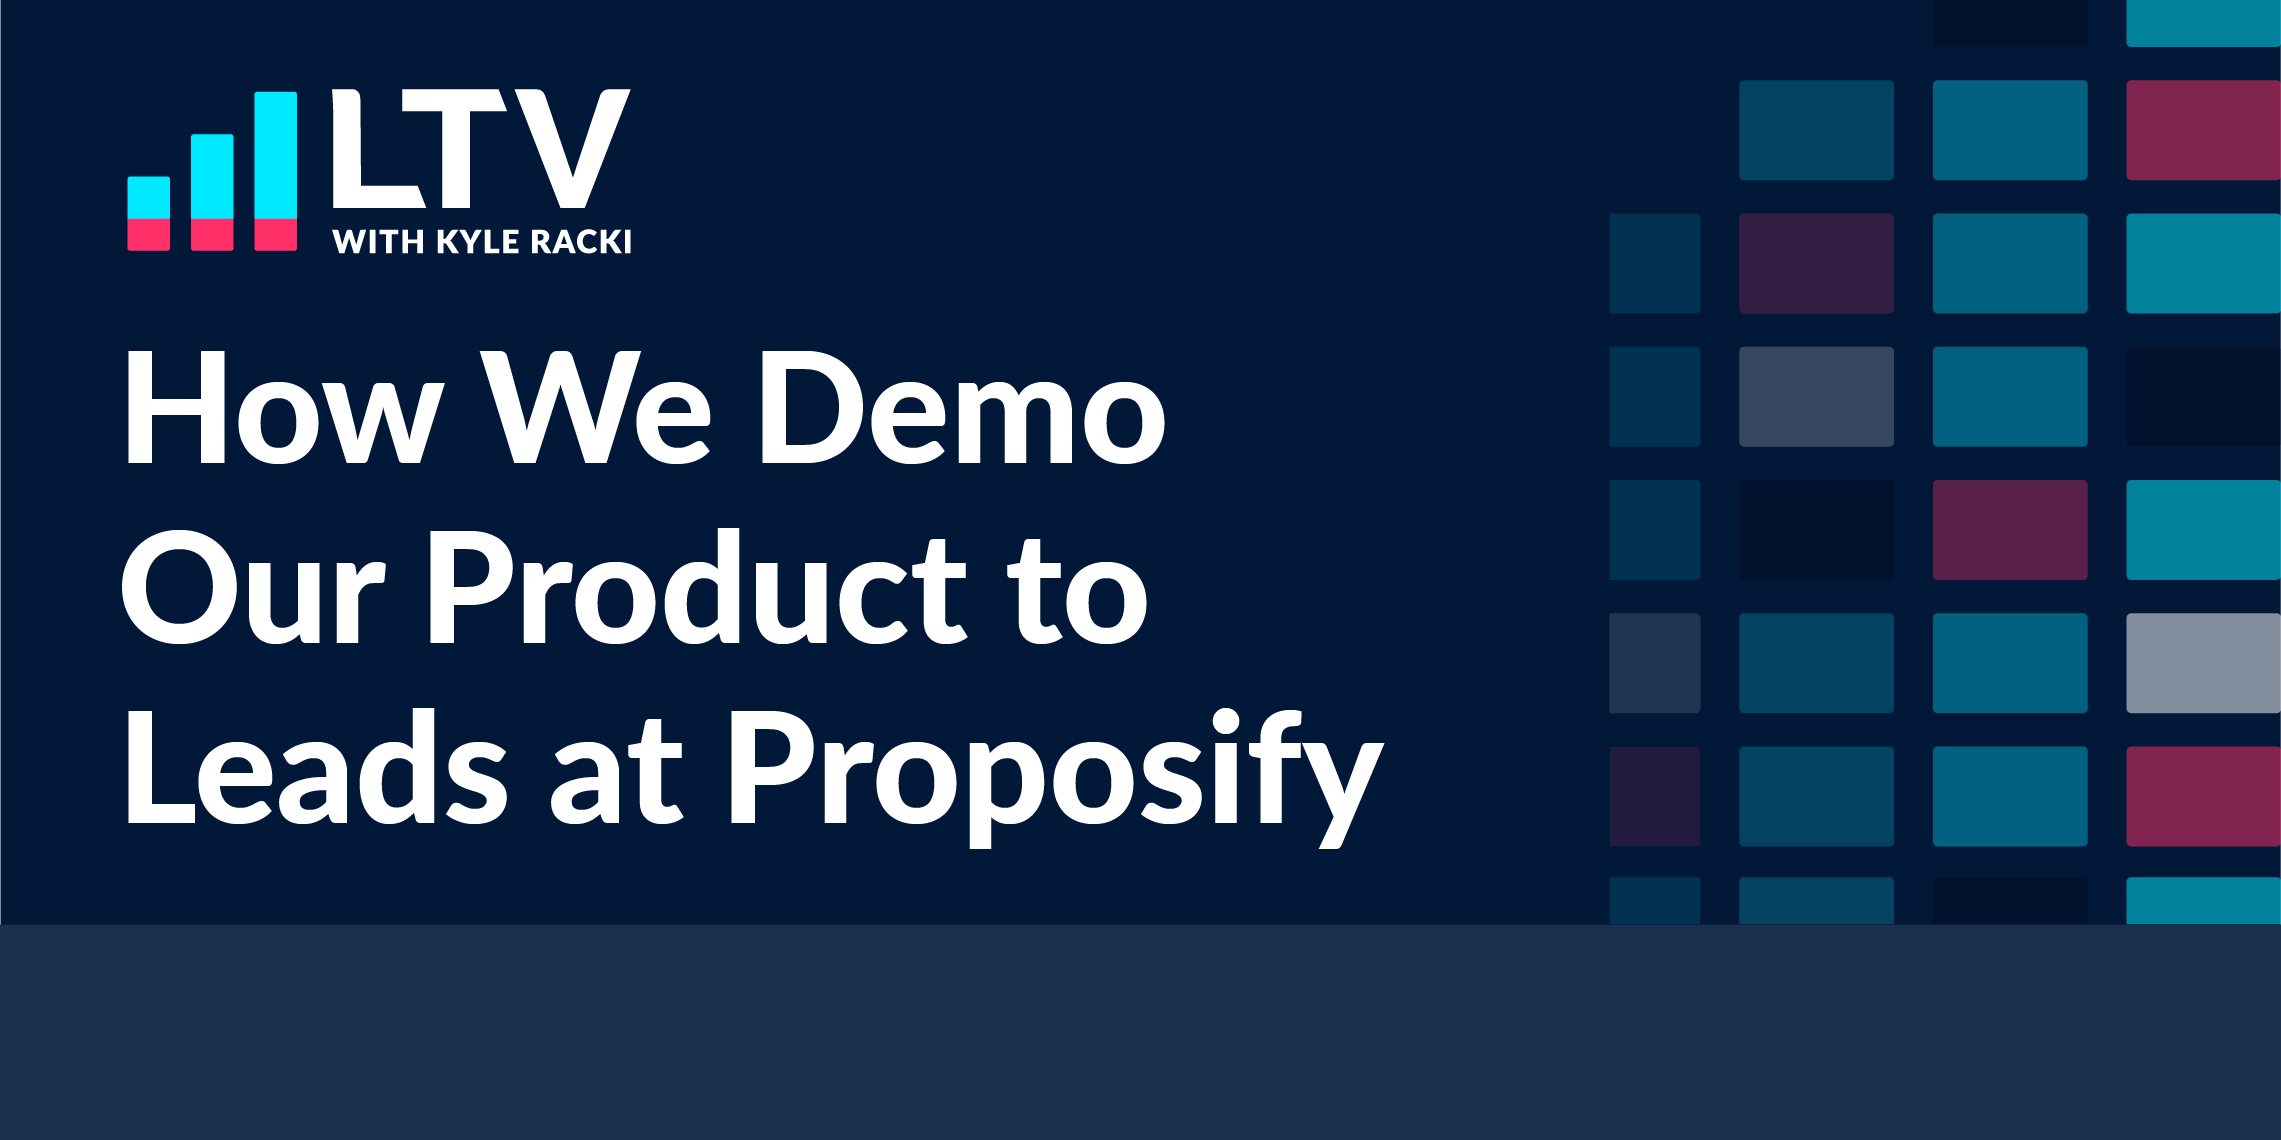 How We Demo our Product to Leads At Proposify